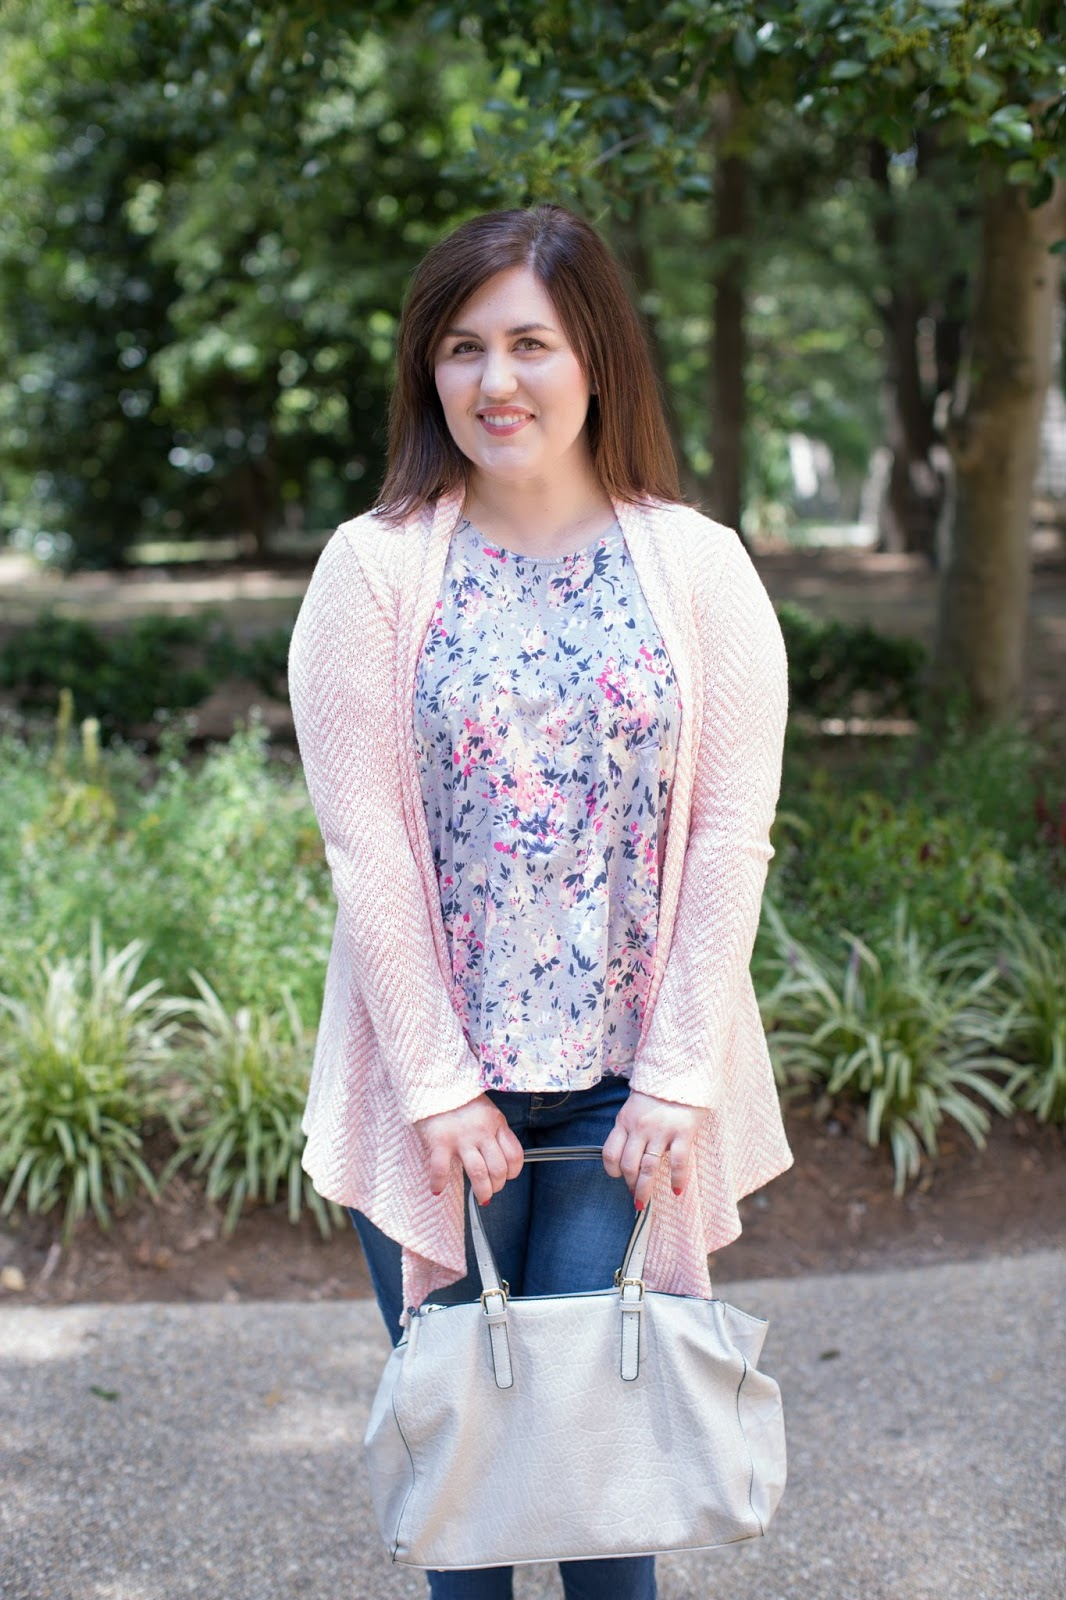 Rebecca Lately Floral Top Pink Chevron Cardigan Old Navy Rockstar Jeans Navy Wedges